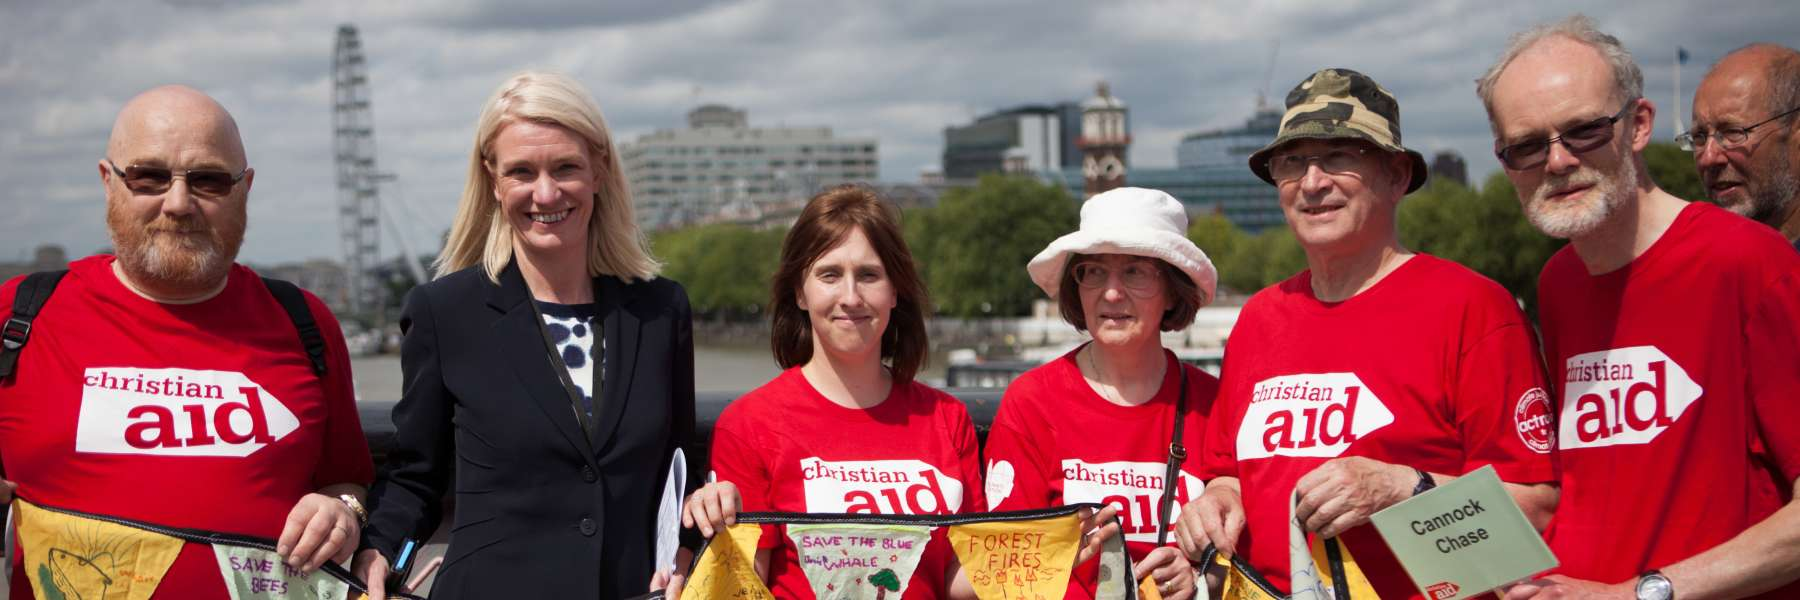 Campaigner lobby their MP on climate change - London Christian Aid